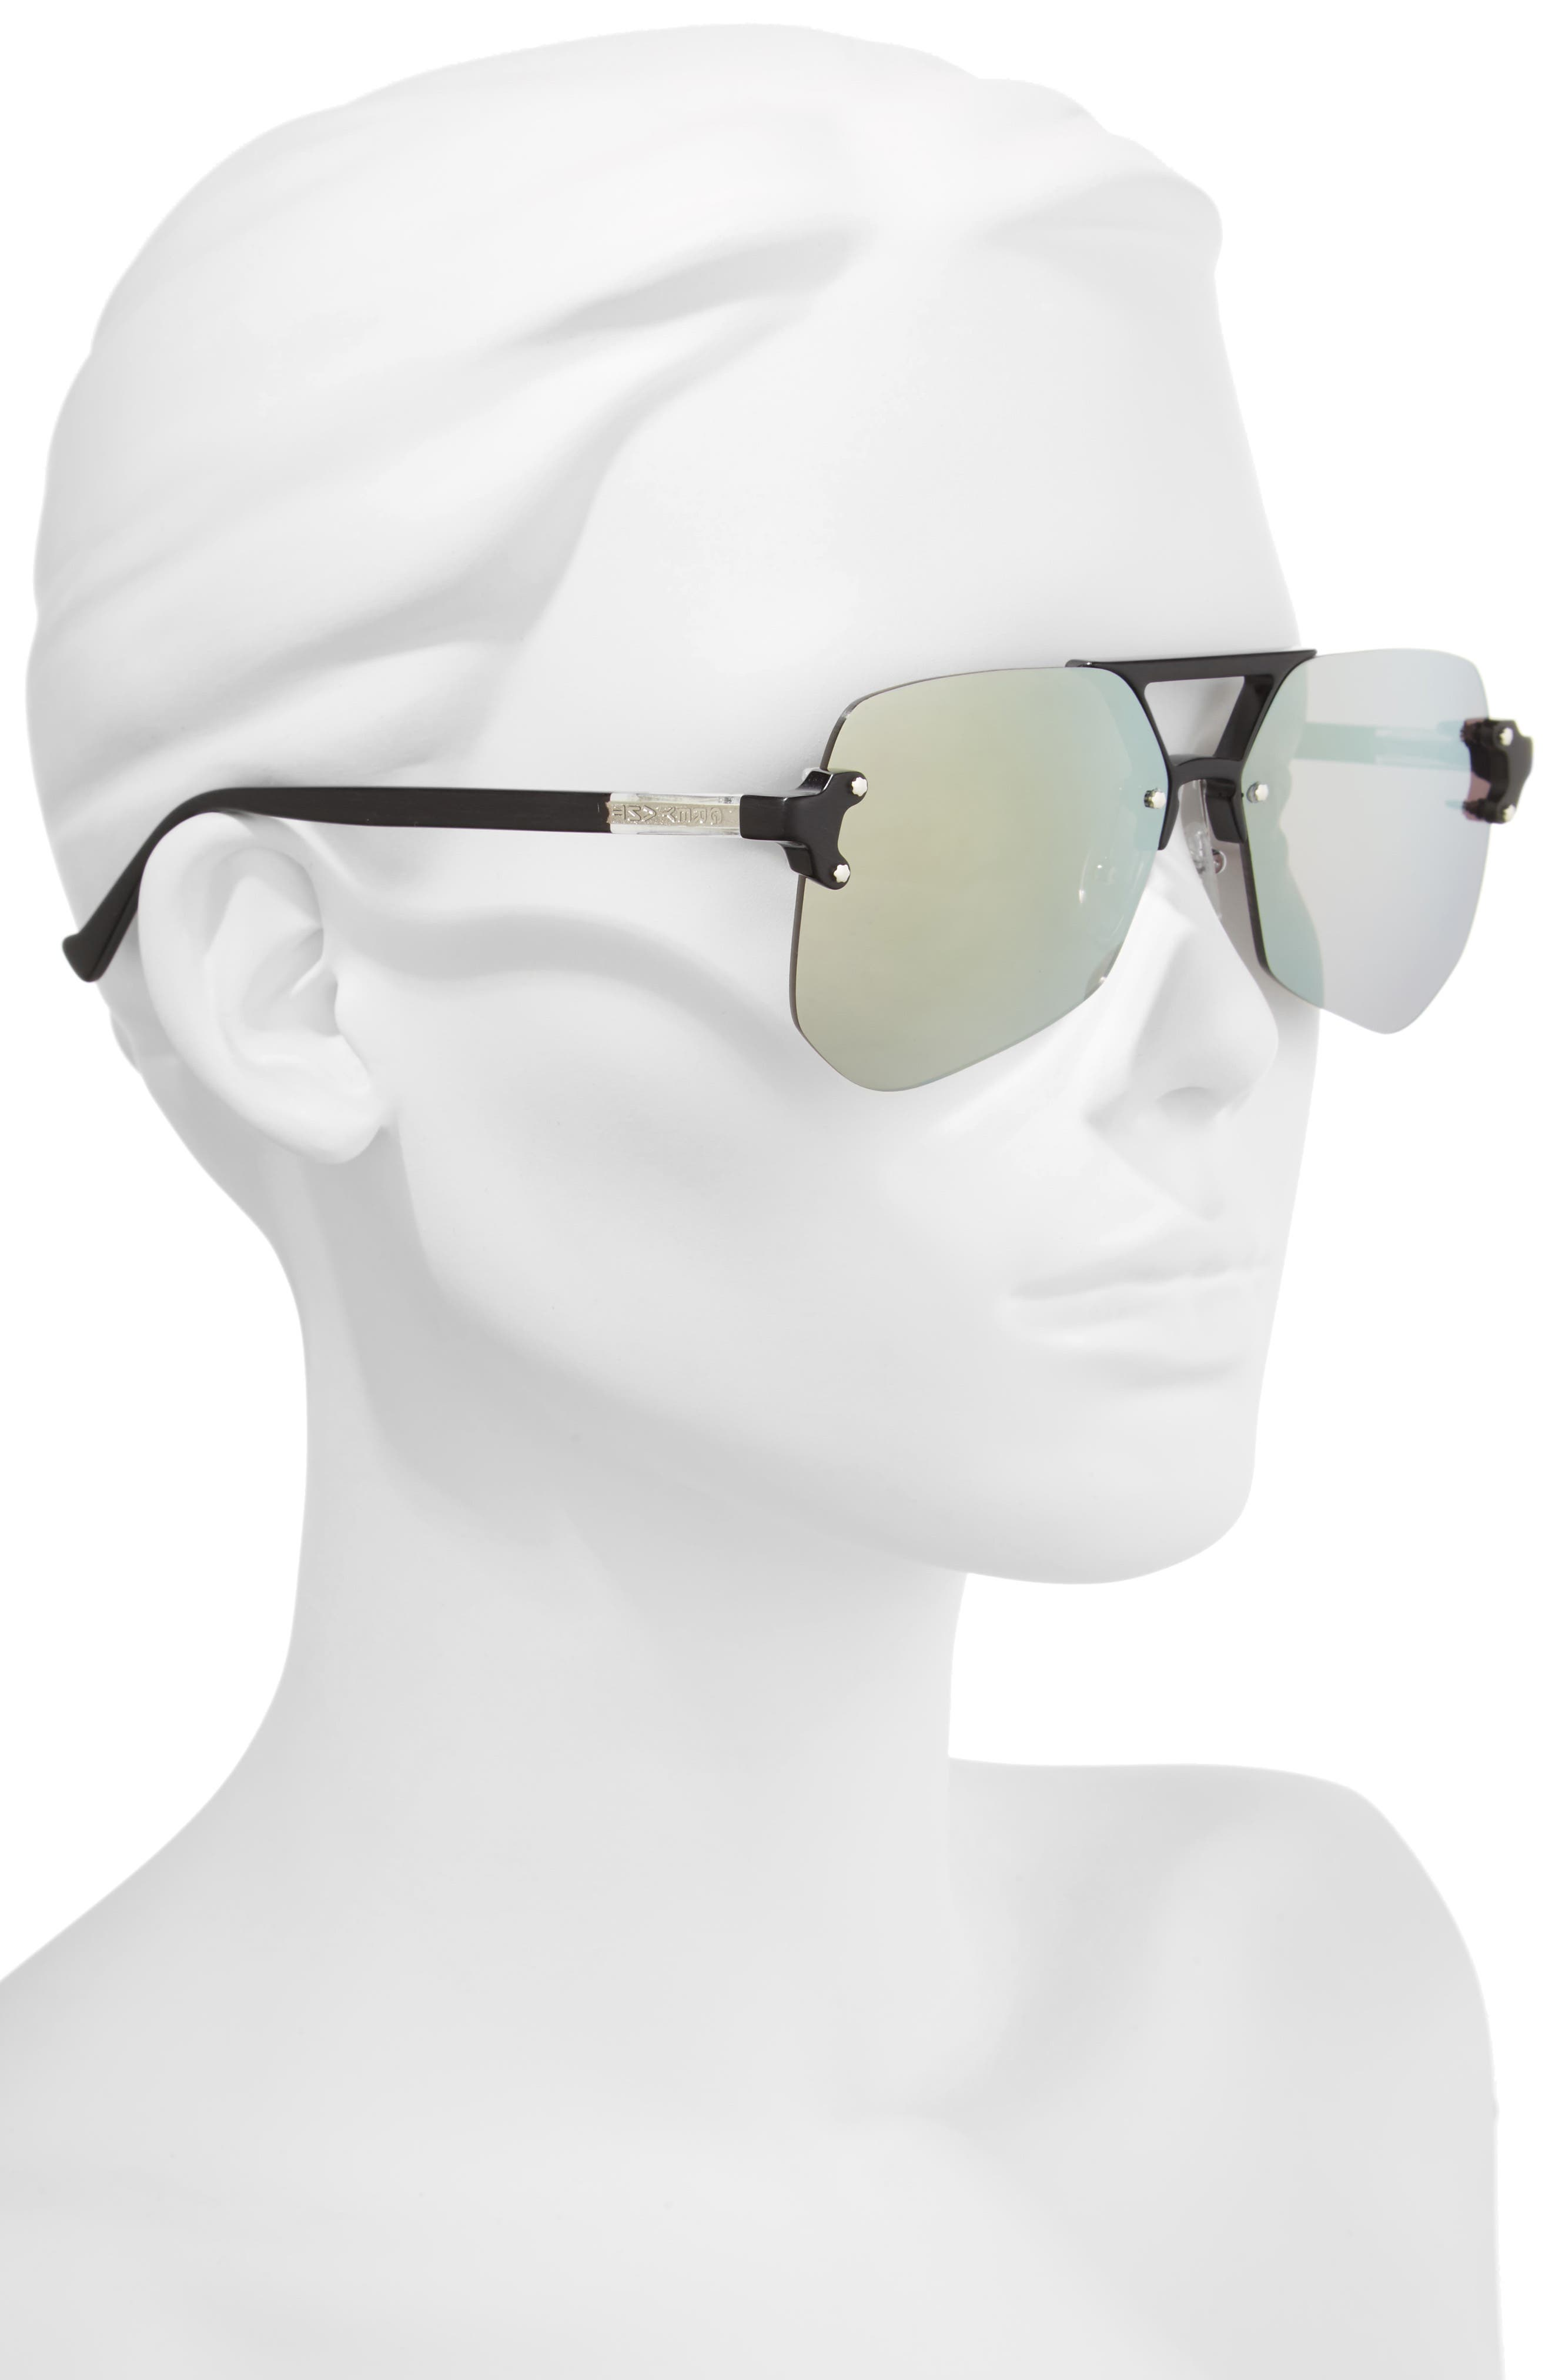 Yesway 60mm Sunglasses,                             Alternate thumbnail 2, color,                             040